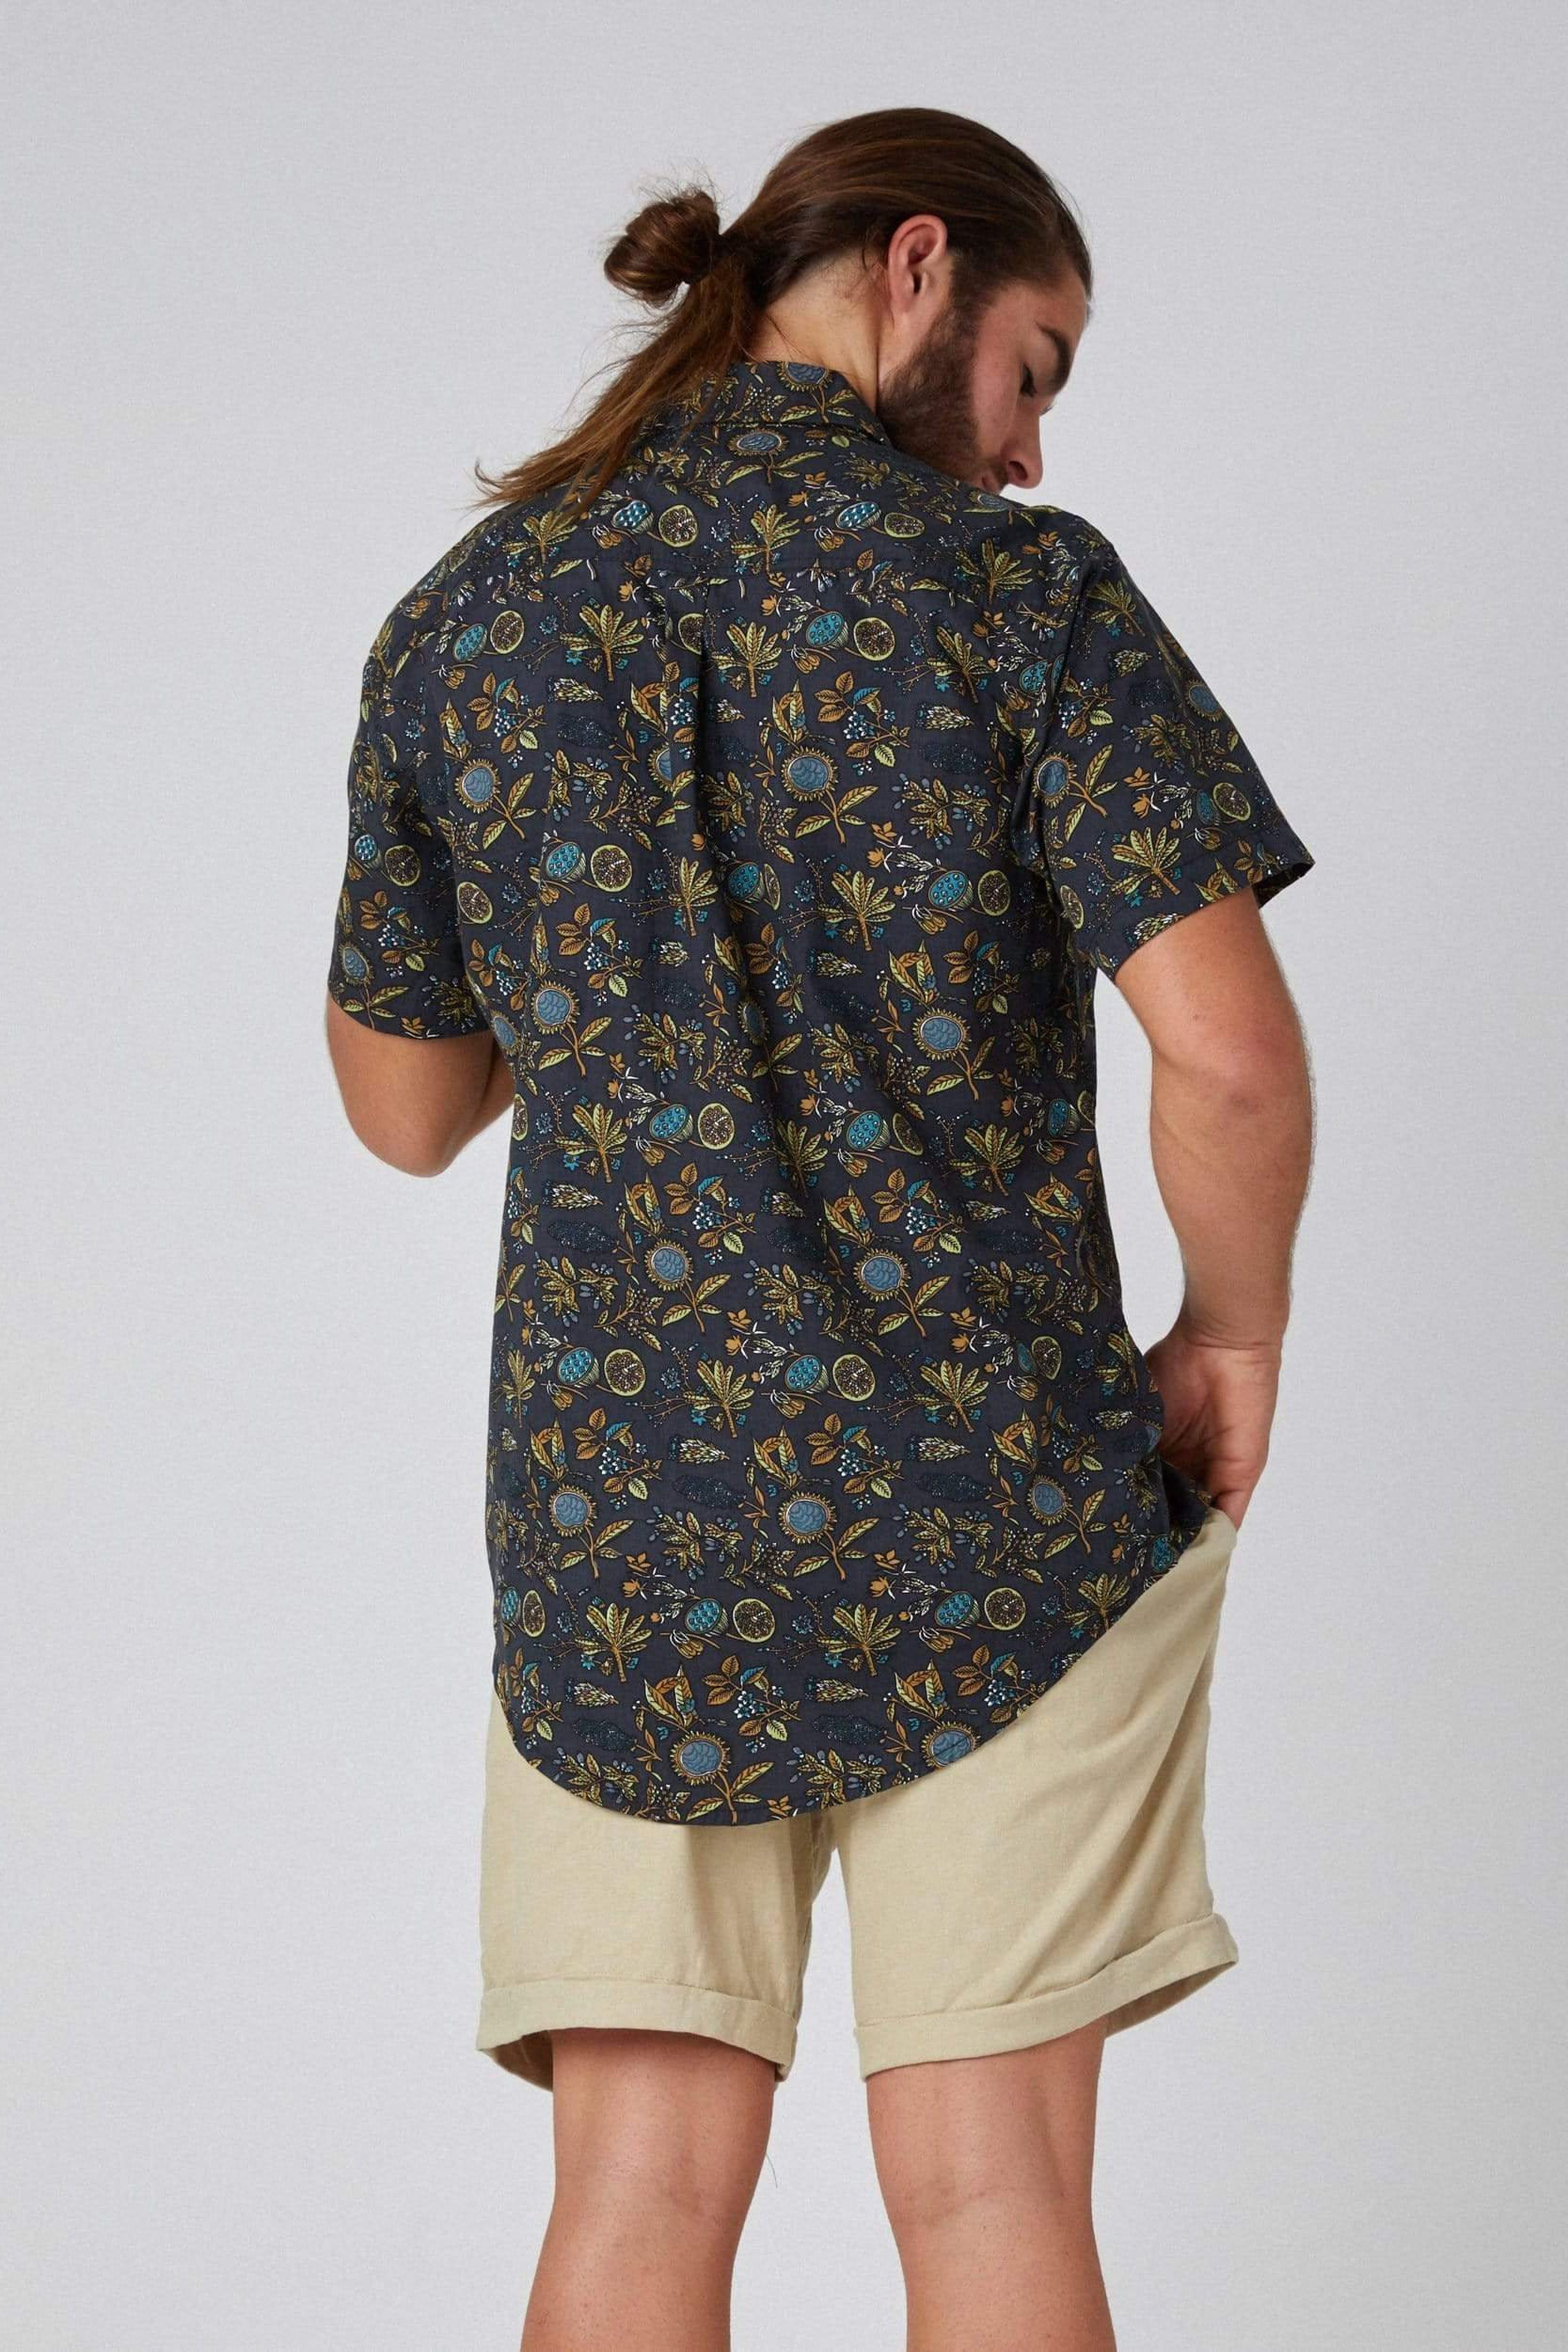 Lotus Shirt - Man Shirt - LOST IN PARADISE